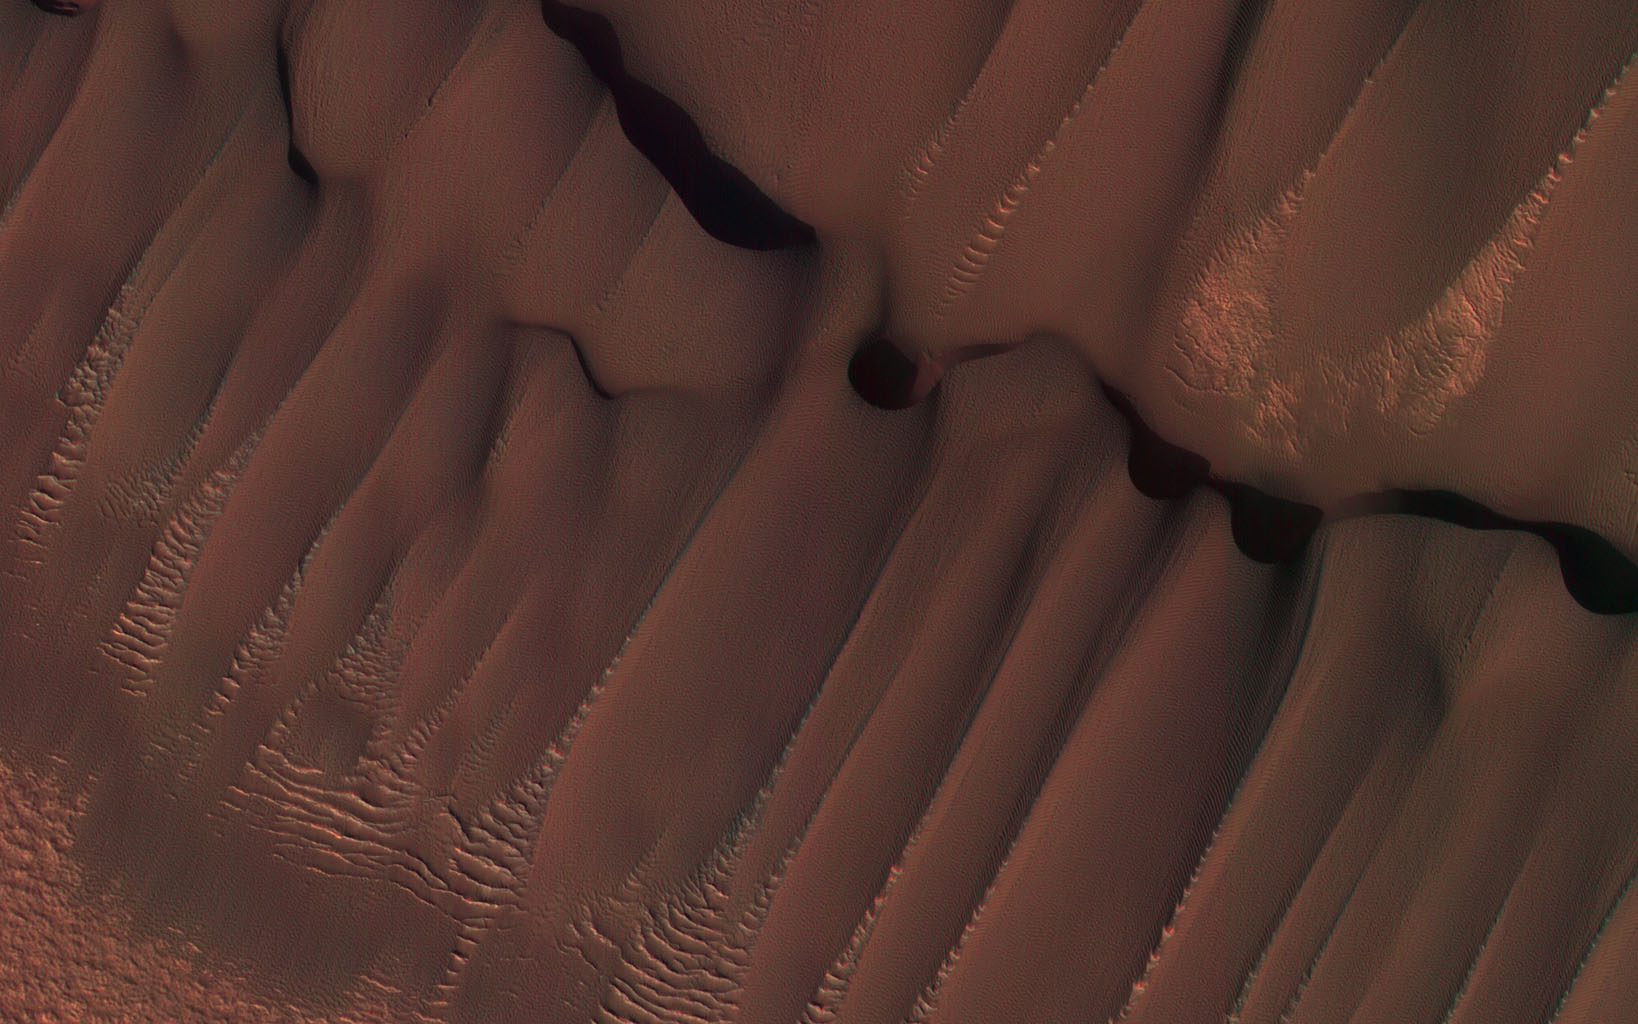 This image was taken by NASA's Mars Reconnaissance Orbiter during the Martian northern summer, thus there is no frost present on the dunes.